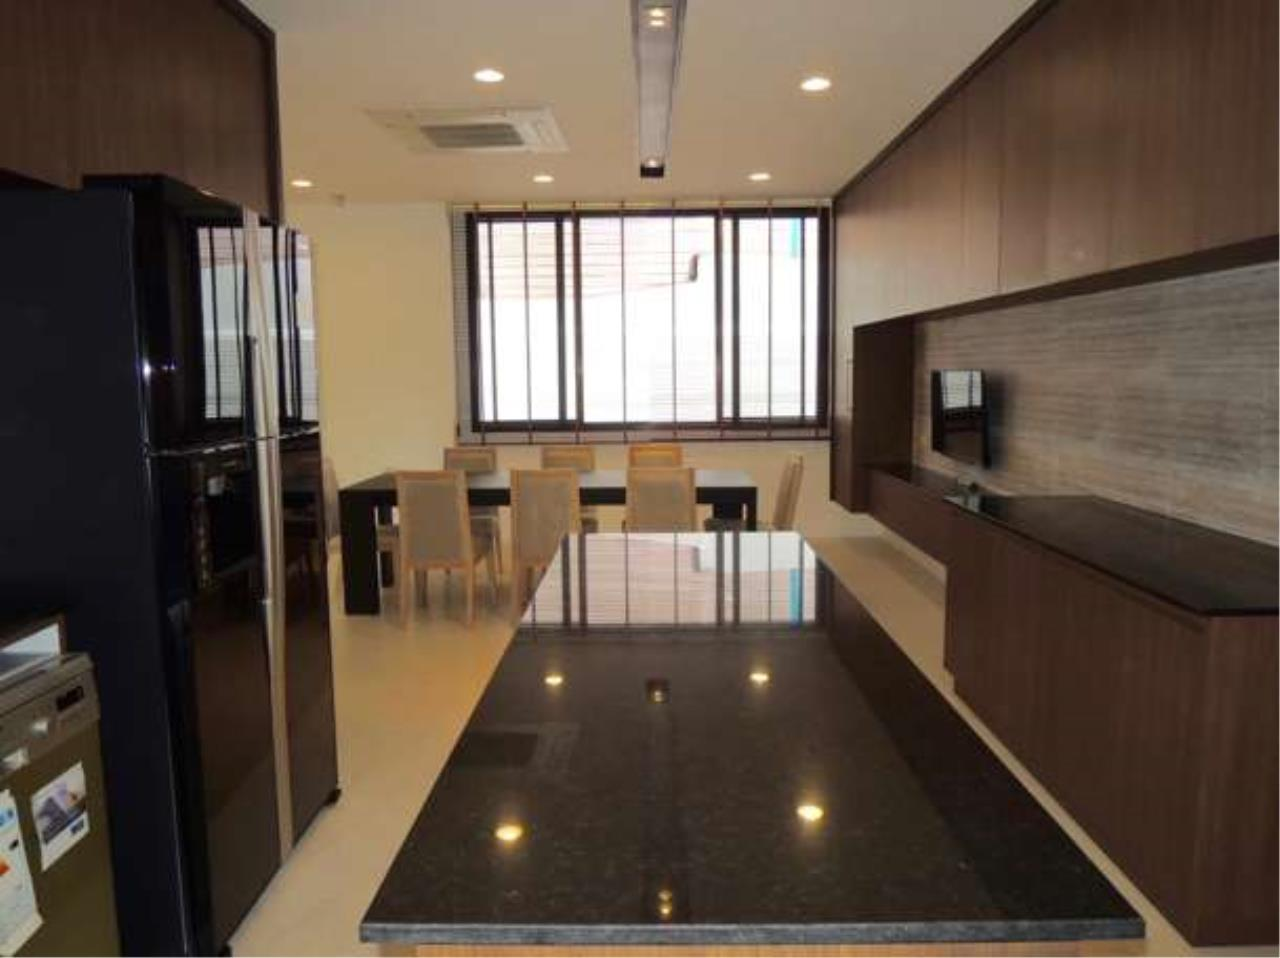 Right Move Thailand Agency's HR423 House For Sale  60,000,000 THB  - 4 Bedrooms - 315 sqm. 9